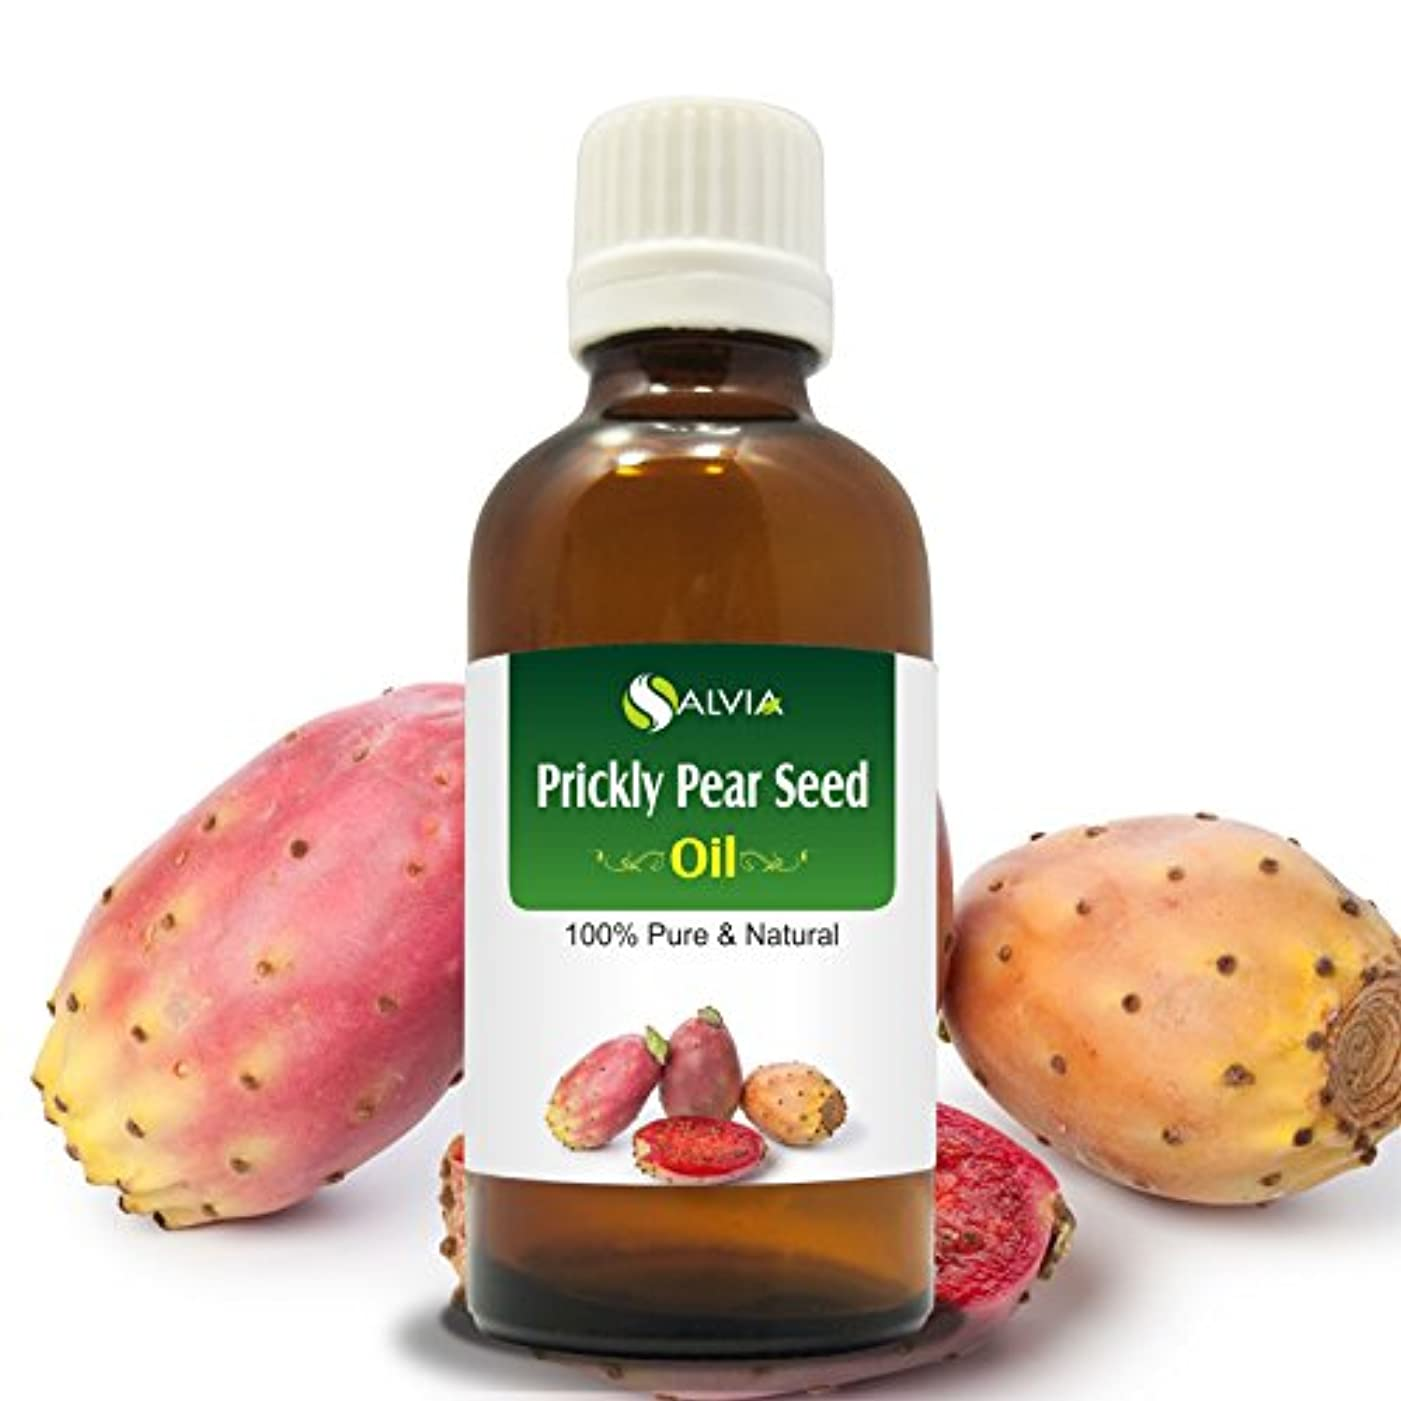 PRICKLY PEAR SEED OIL(OPUNTIA FICUS-INDICA)100% NATURAL PURE CARRIER OIL 30ML